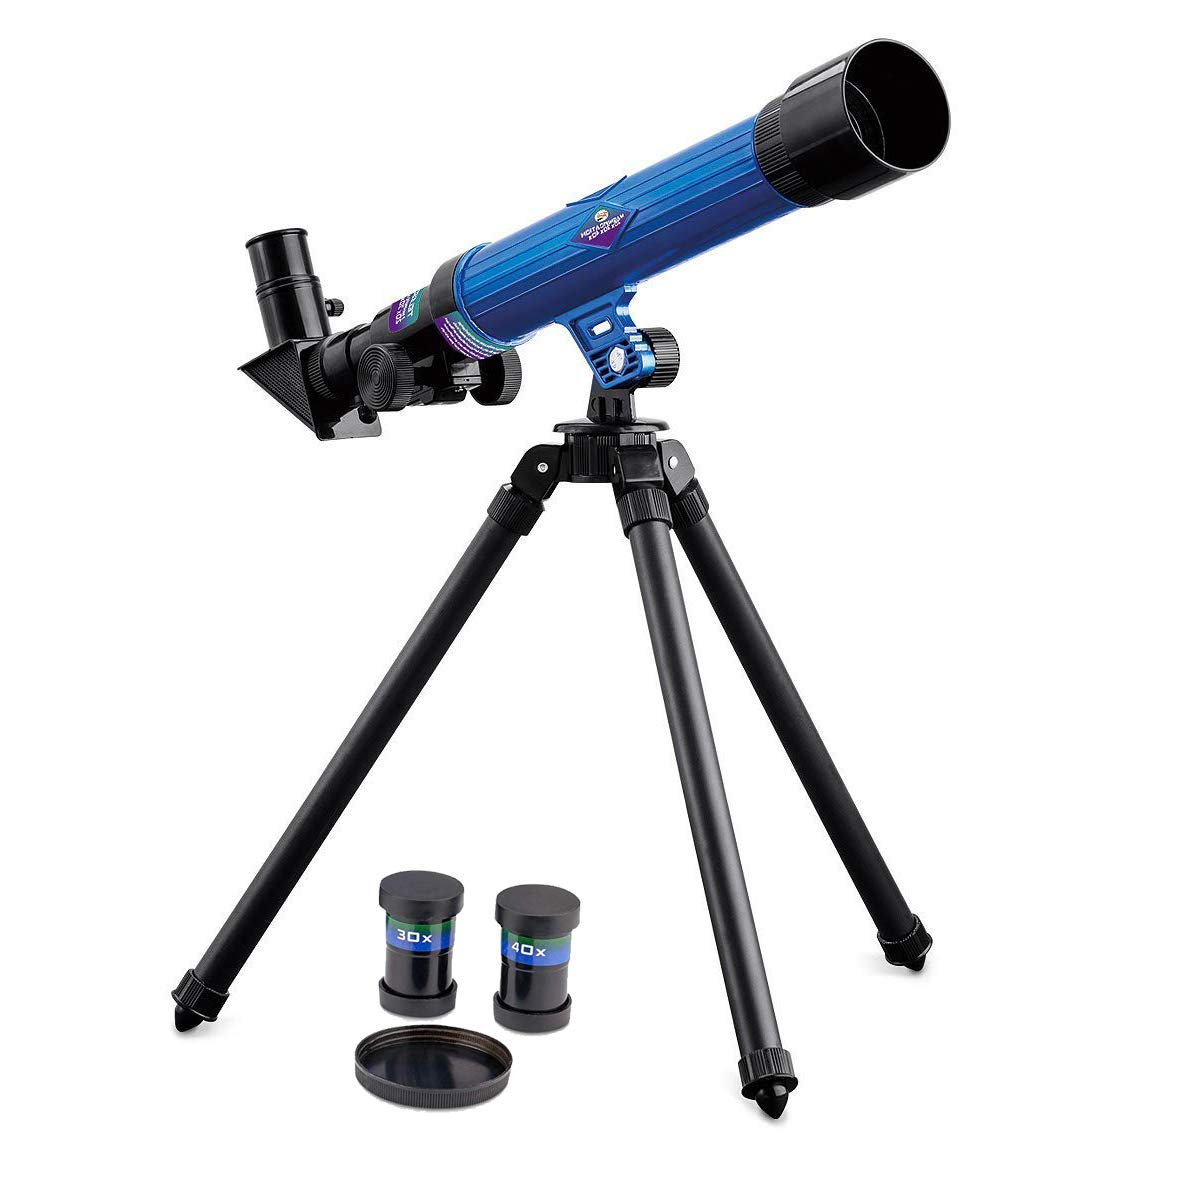 GLOW Telescope for Kids – Blue Mini Tripod Science Learning Sky Space Stars Moon Planet Exploration Toy Gift with Up to 40x Magnification, Lens and Eyepiece Covers, Focus and Viewing Angle Adjuster GLOW Wholesale